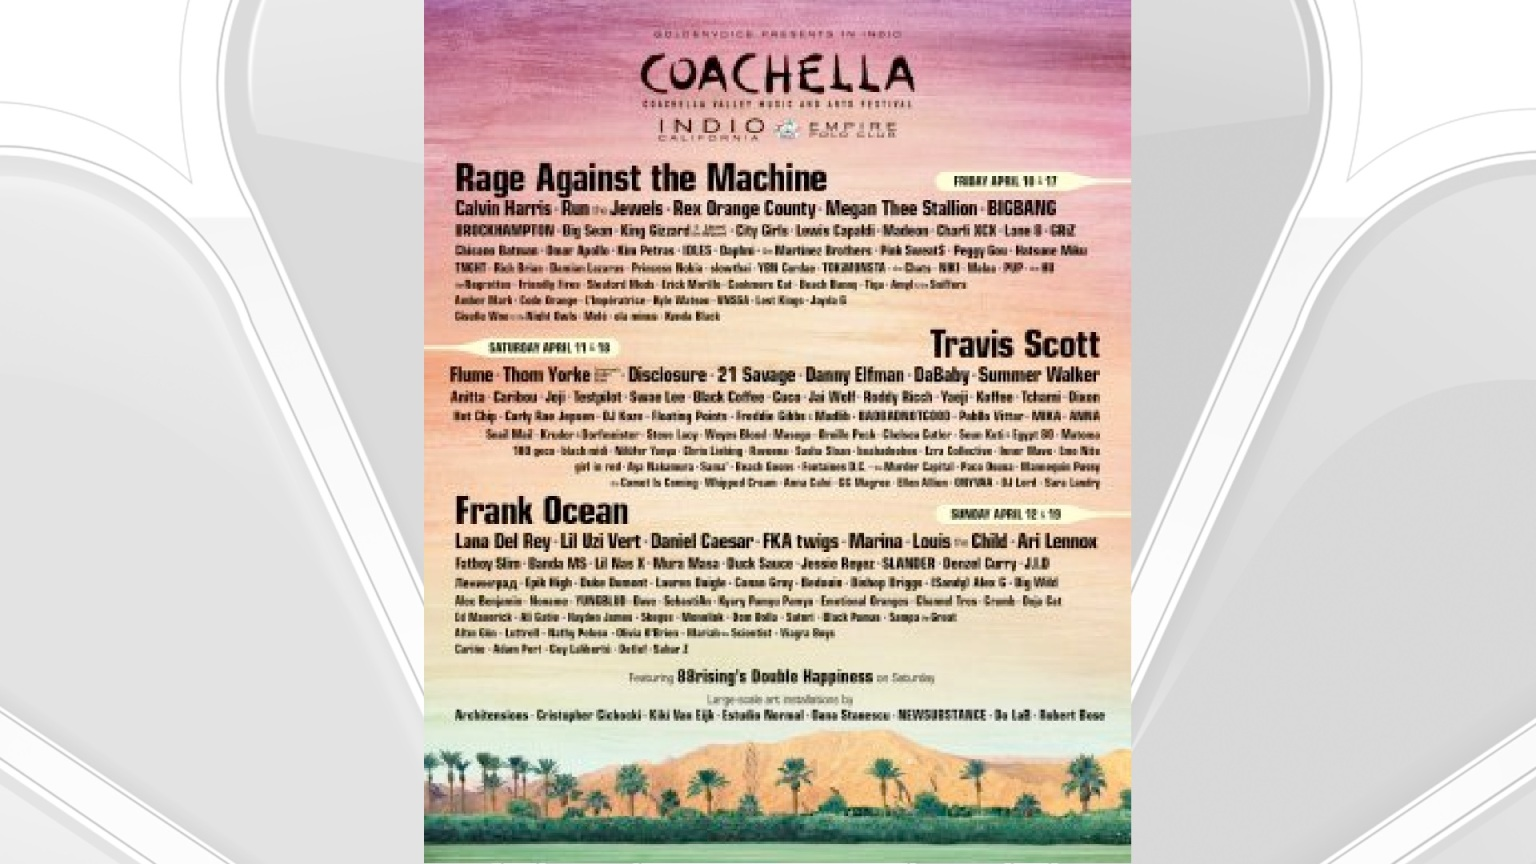 Coachella Announces Headliners at This Spring's Festival